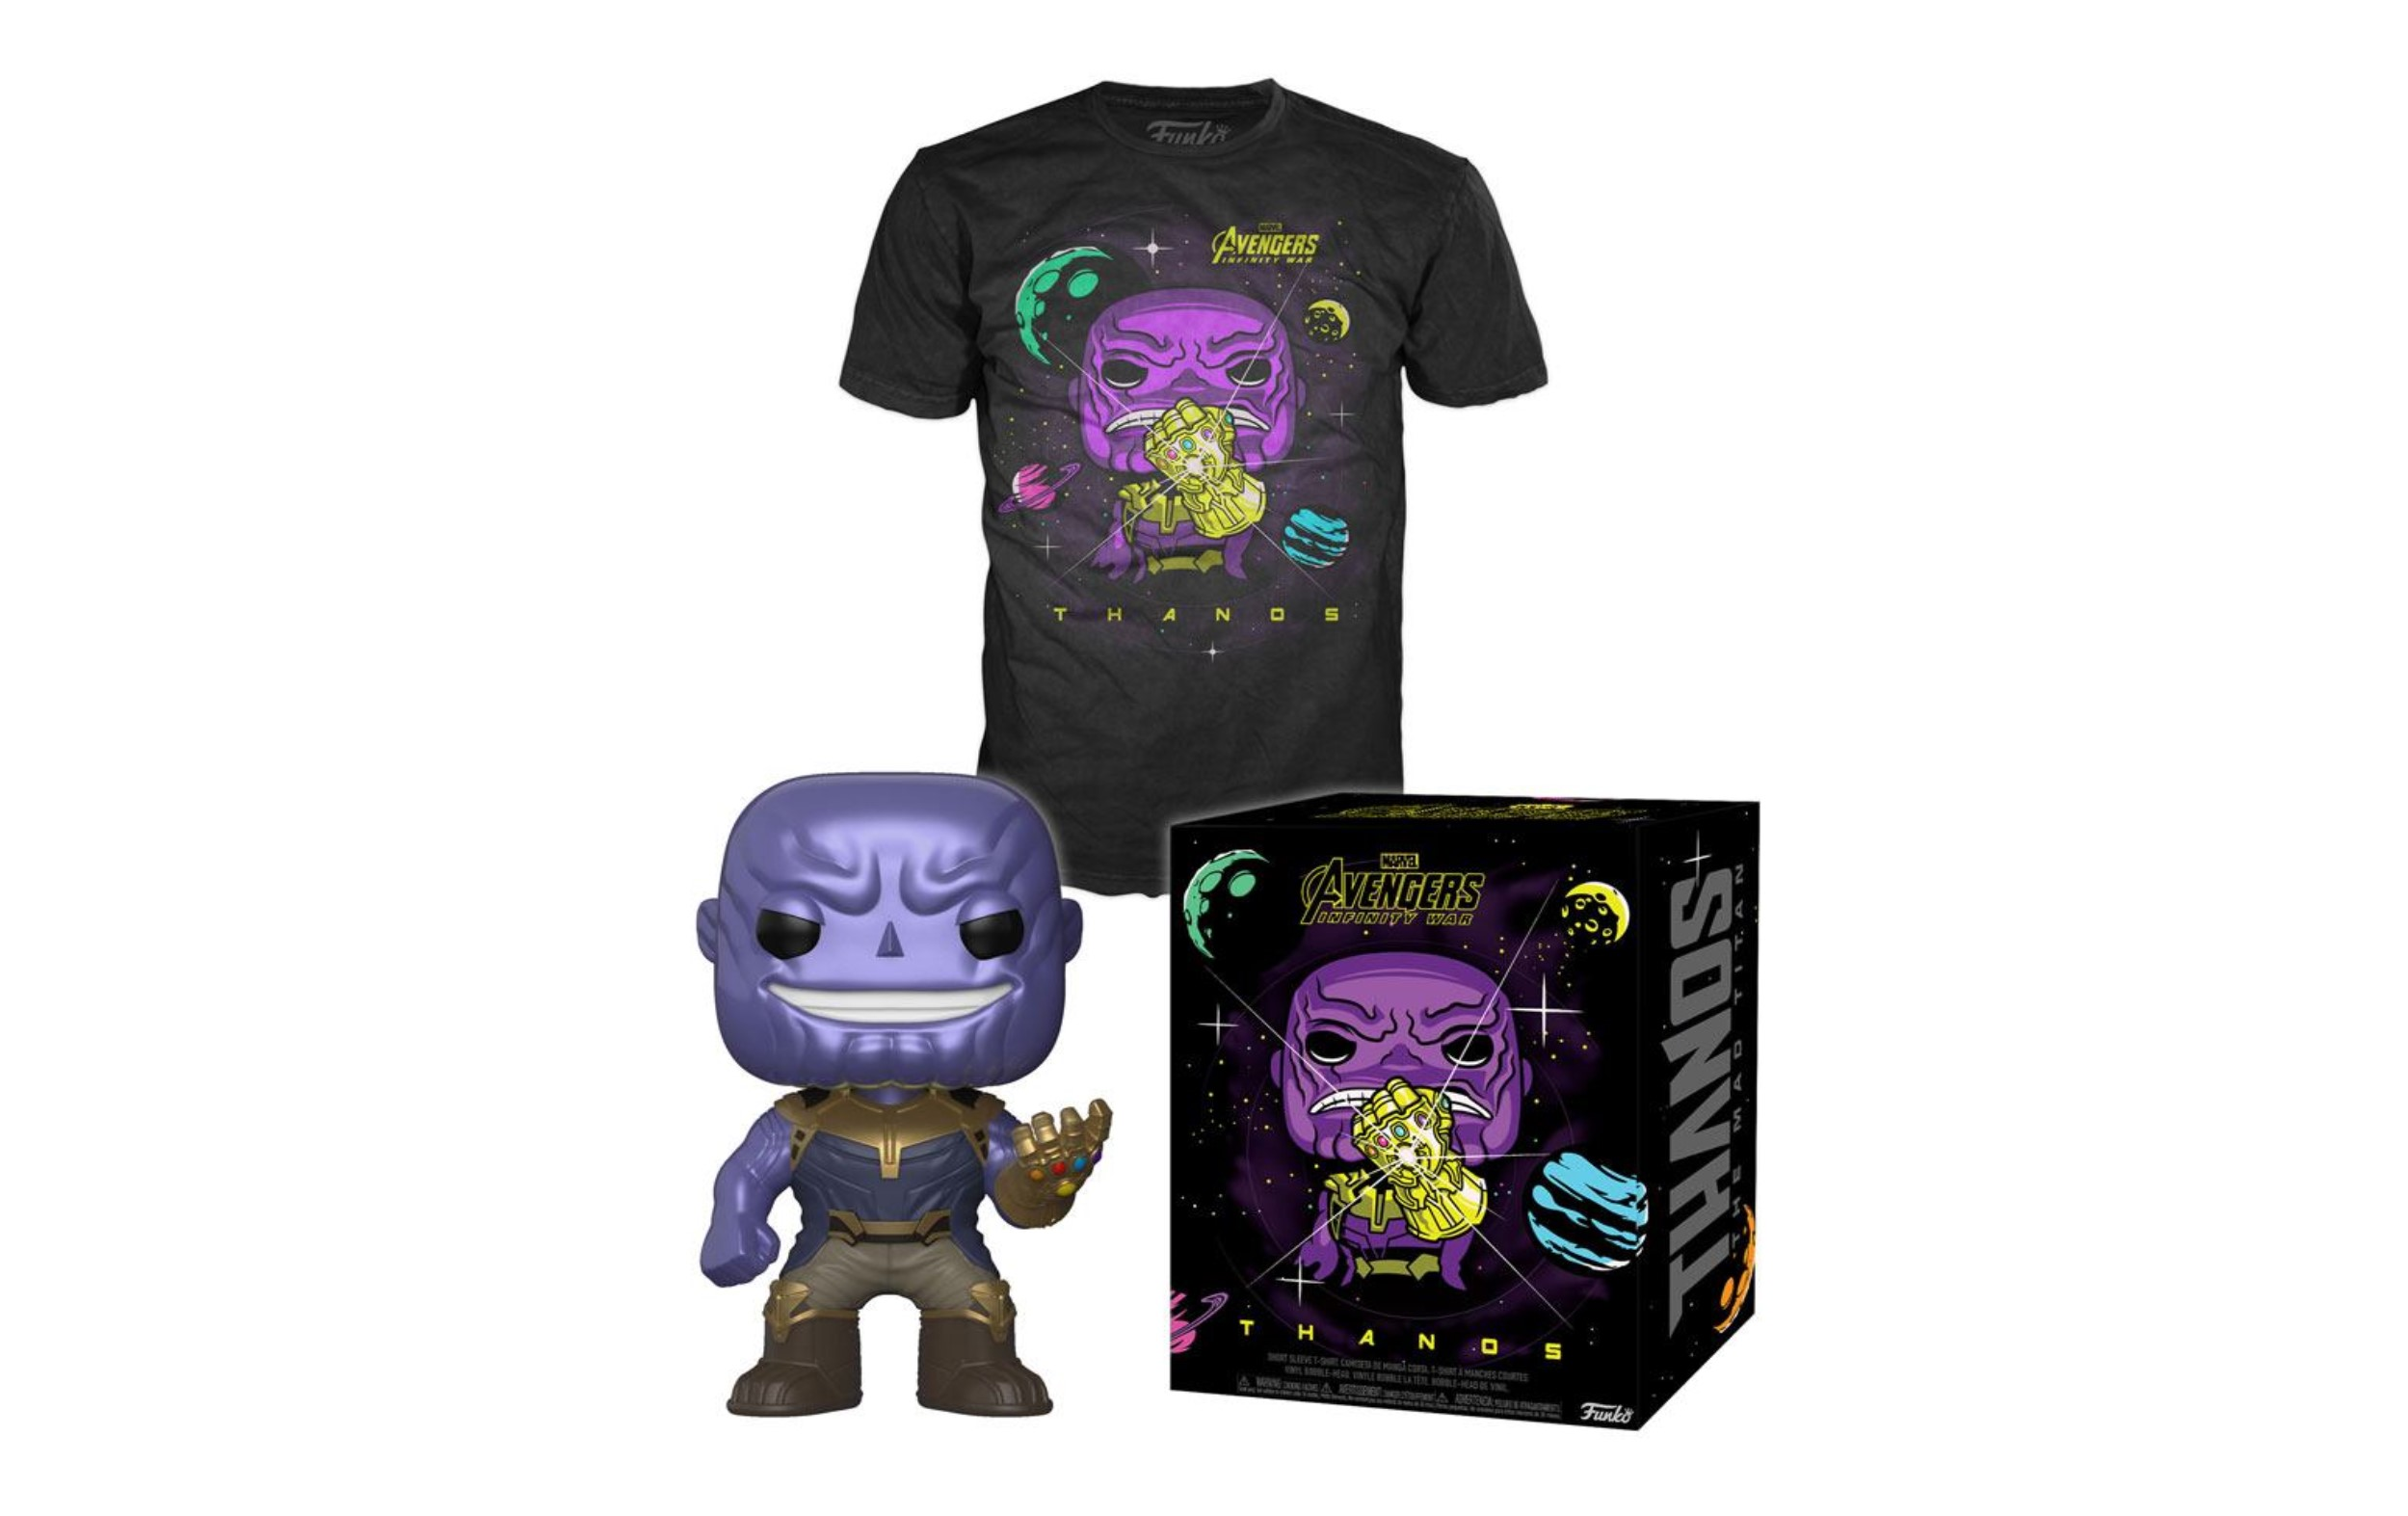 Marvel Avengers Thanos Metallic Pop and Tee Box Funko POP Vinyl Figure Taglia M